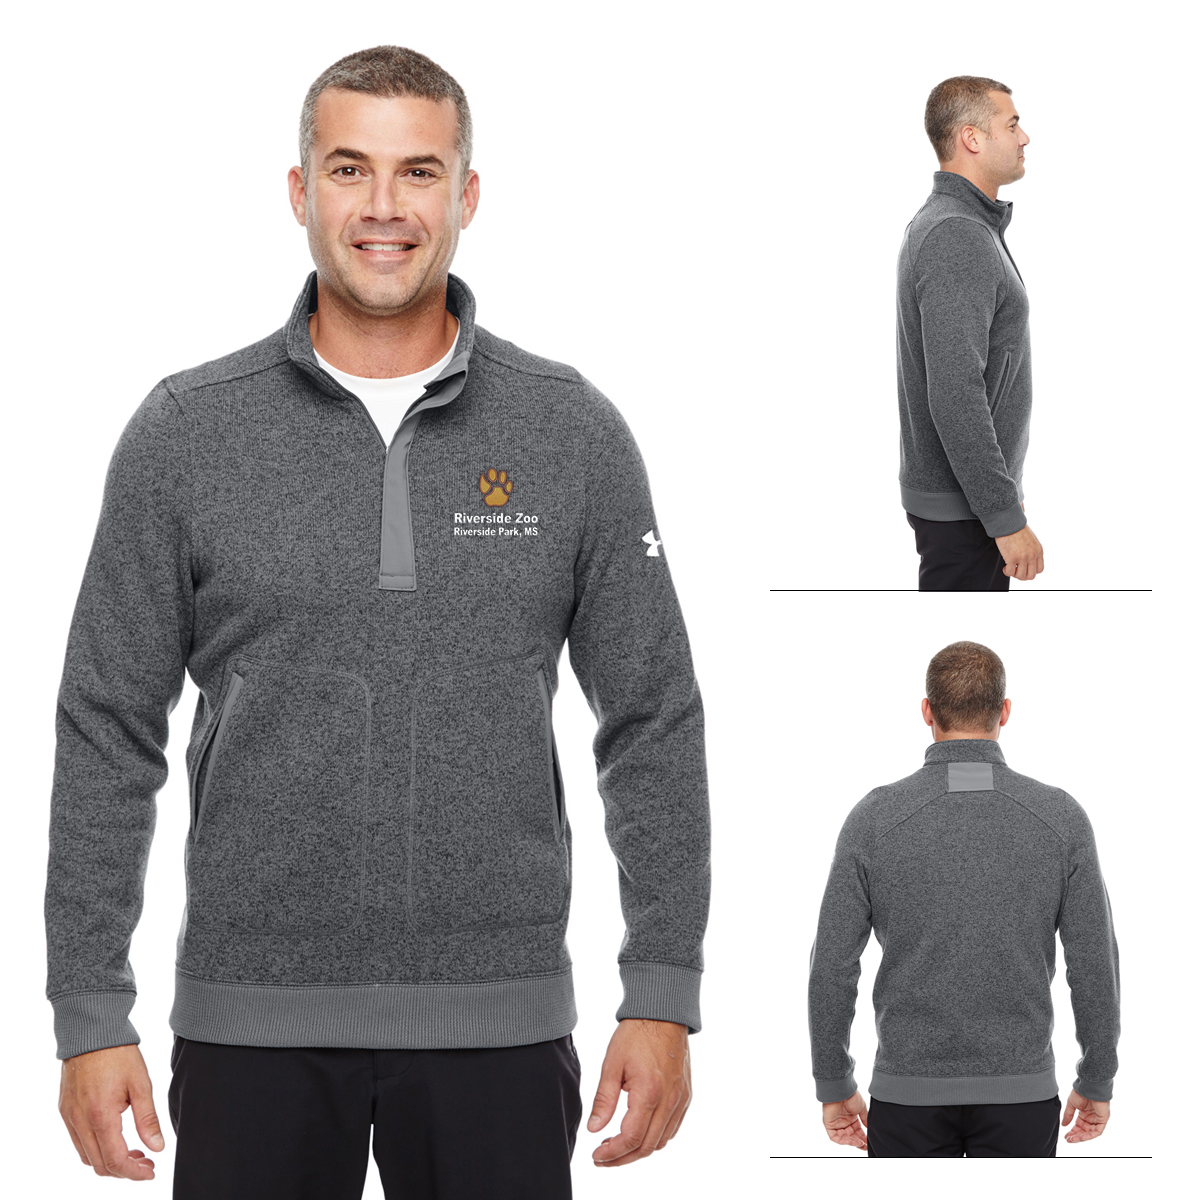 921be86e7 Promotional Under Armour Men's Elevate 1/4 Zip Sweater | Customized ...